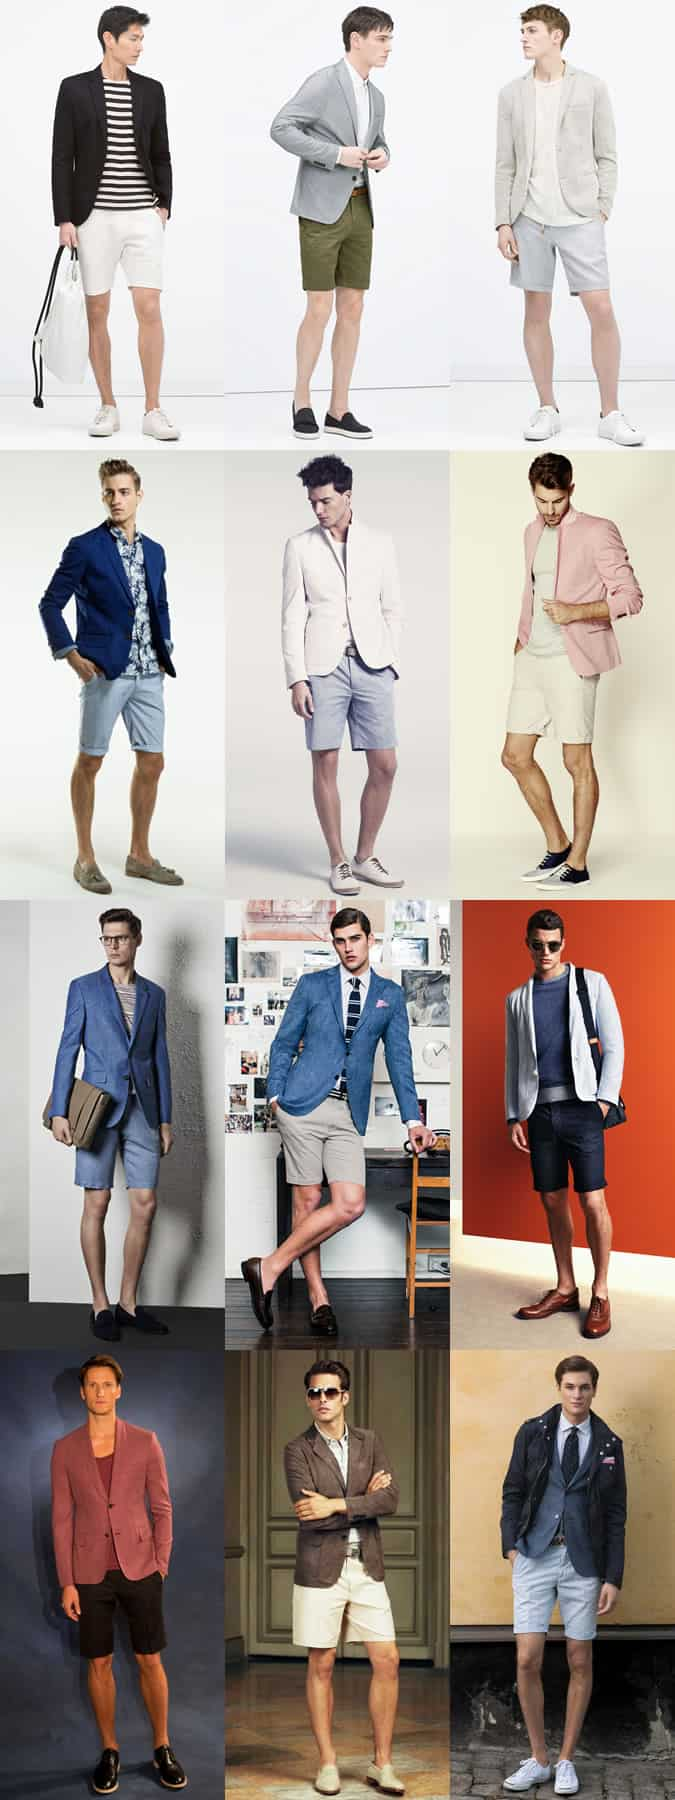 Men's Shorts and Blazer Combinations - Outfit Inspiration Lookbook